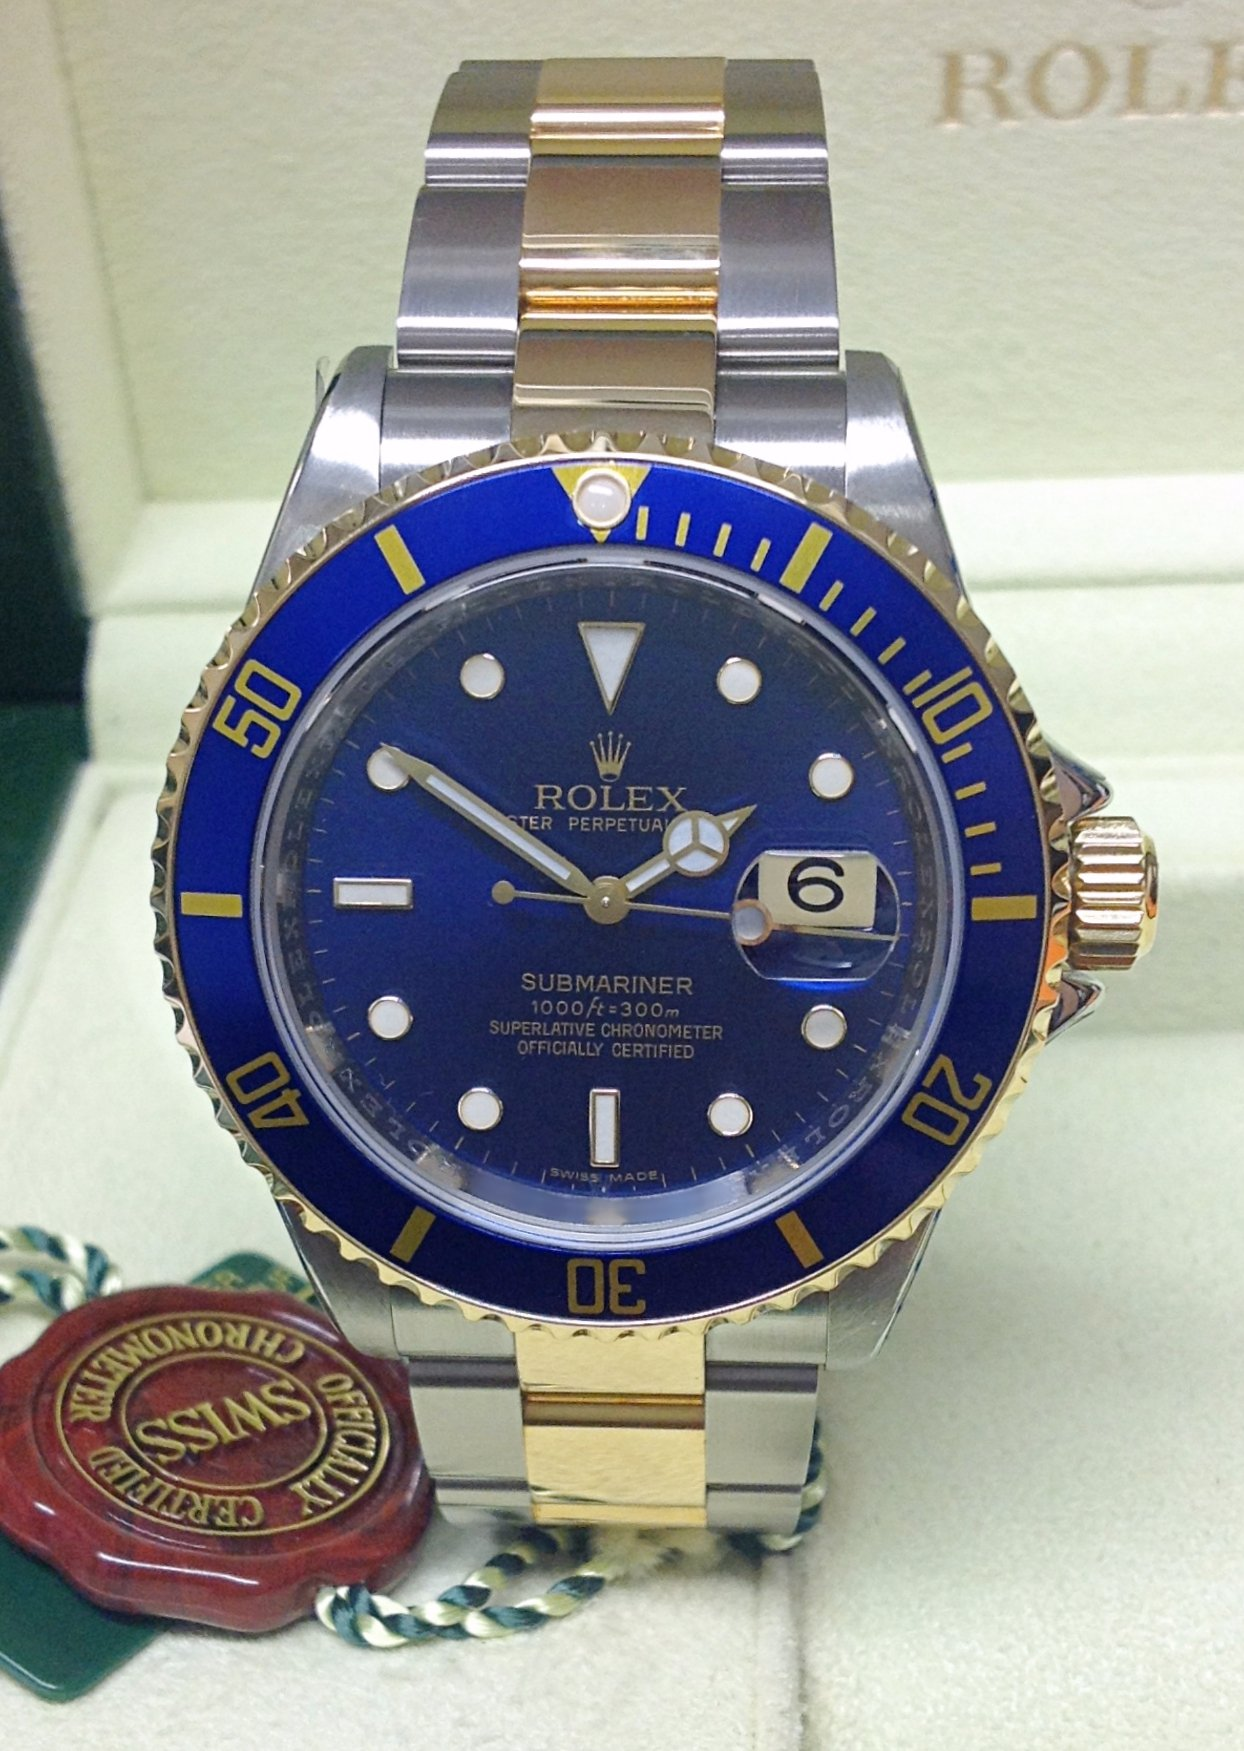 Rolex Submariner Date 16613 Bi/Colour Blue